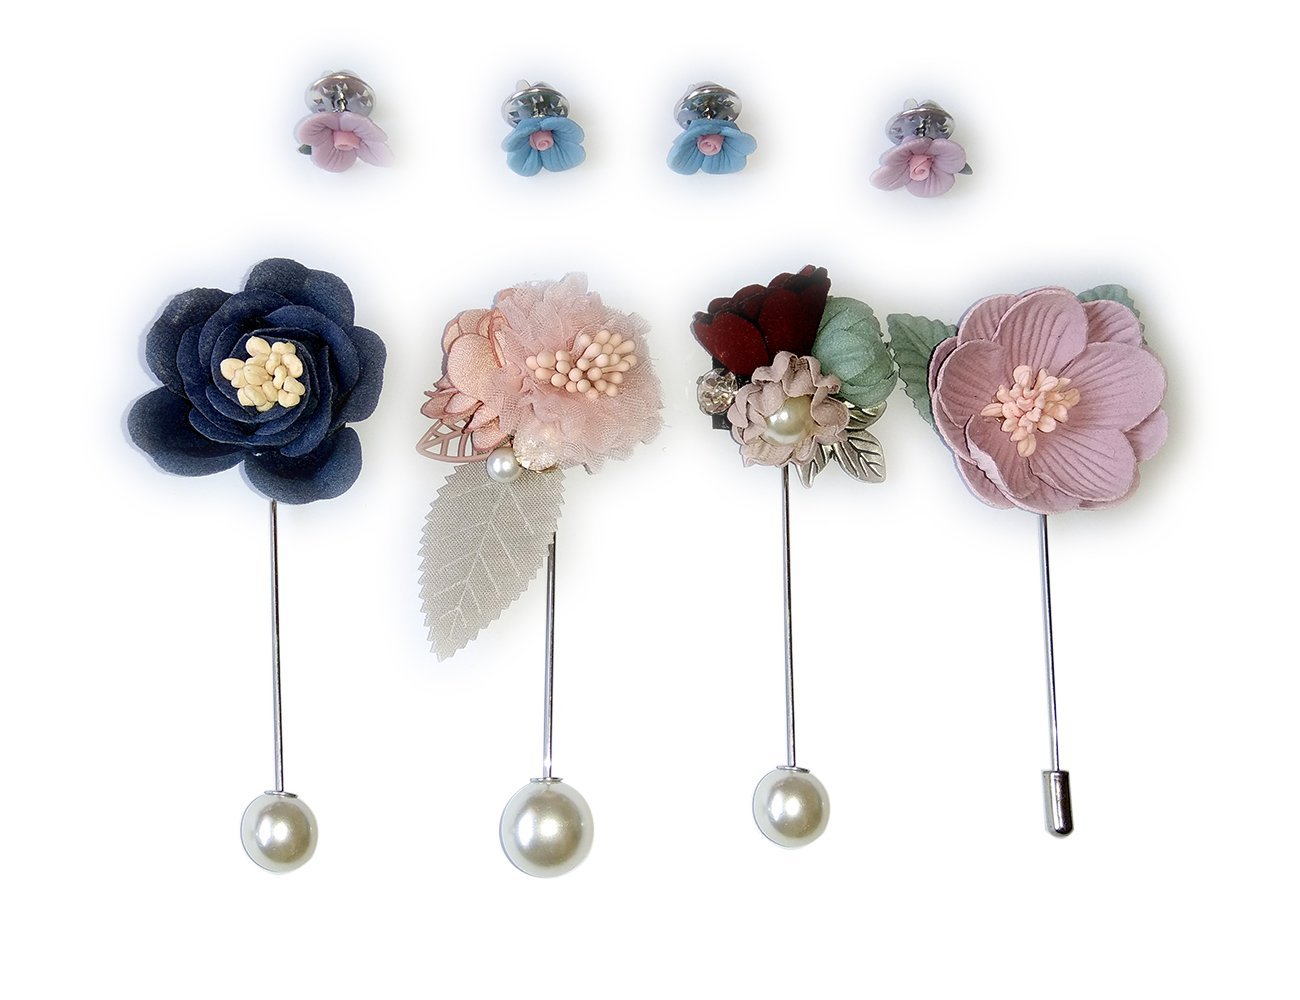 BagTu Handmade Cloth Lapel- Contrast Color Flower Boutonniere Pin Gift Box Set with a Greeting Card (Blue)